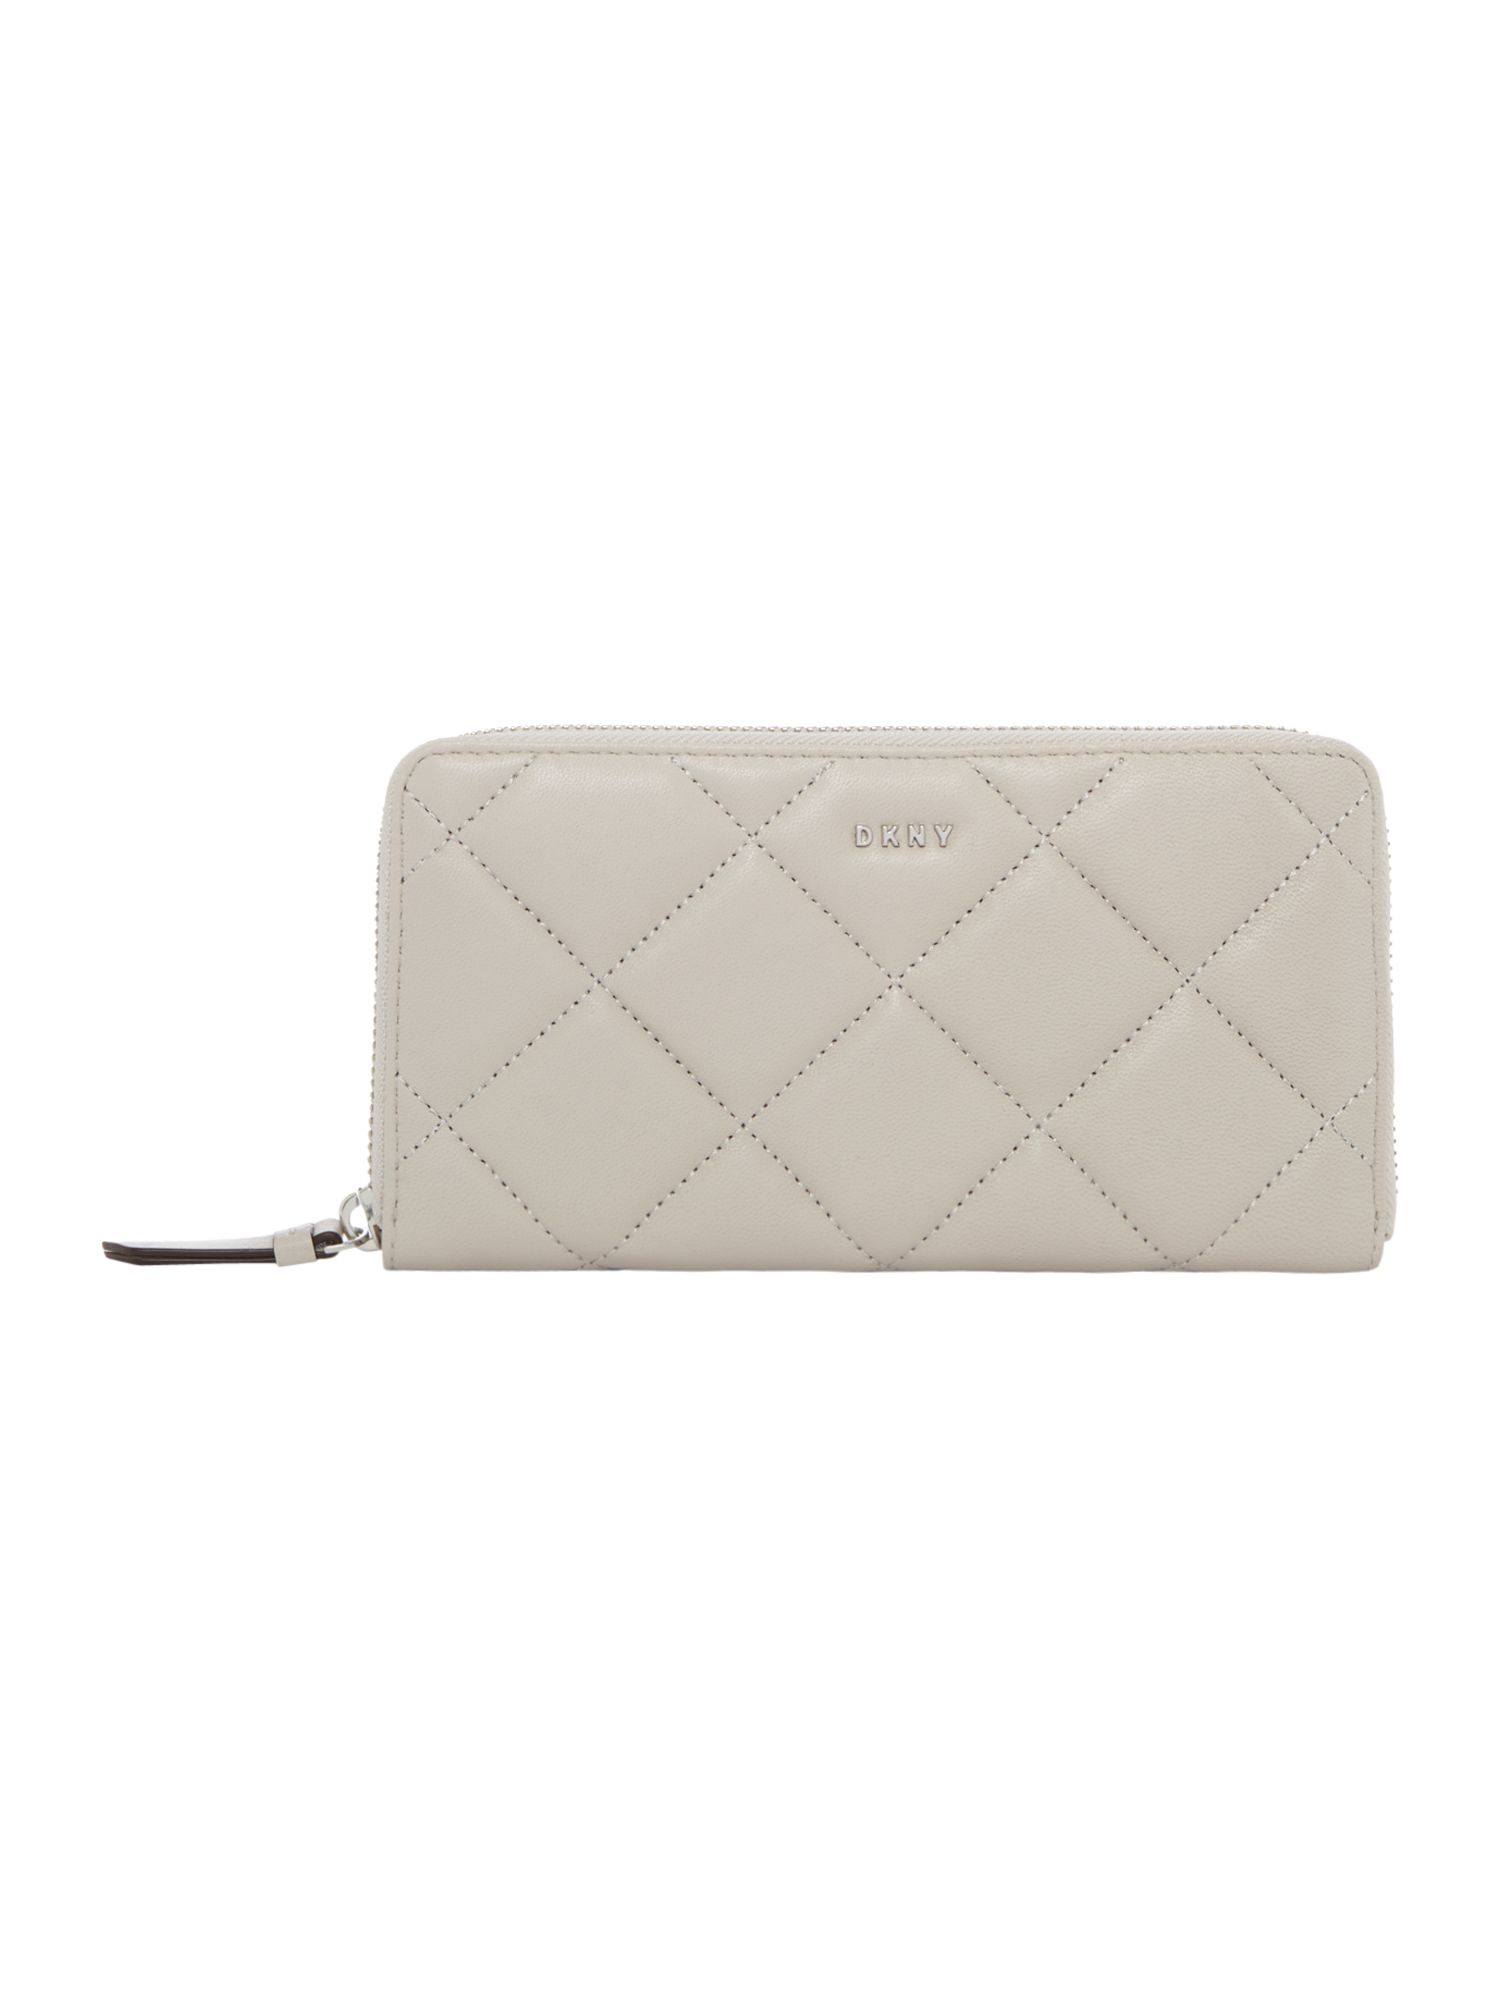 DKNY Barbara large zip around purse, Light Grey